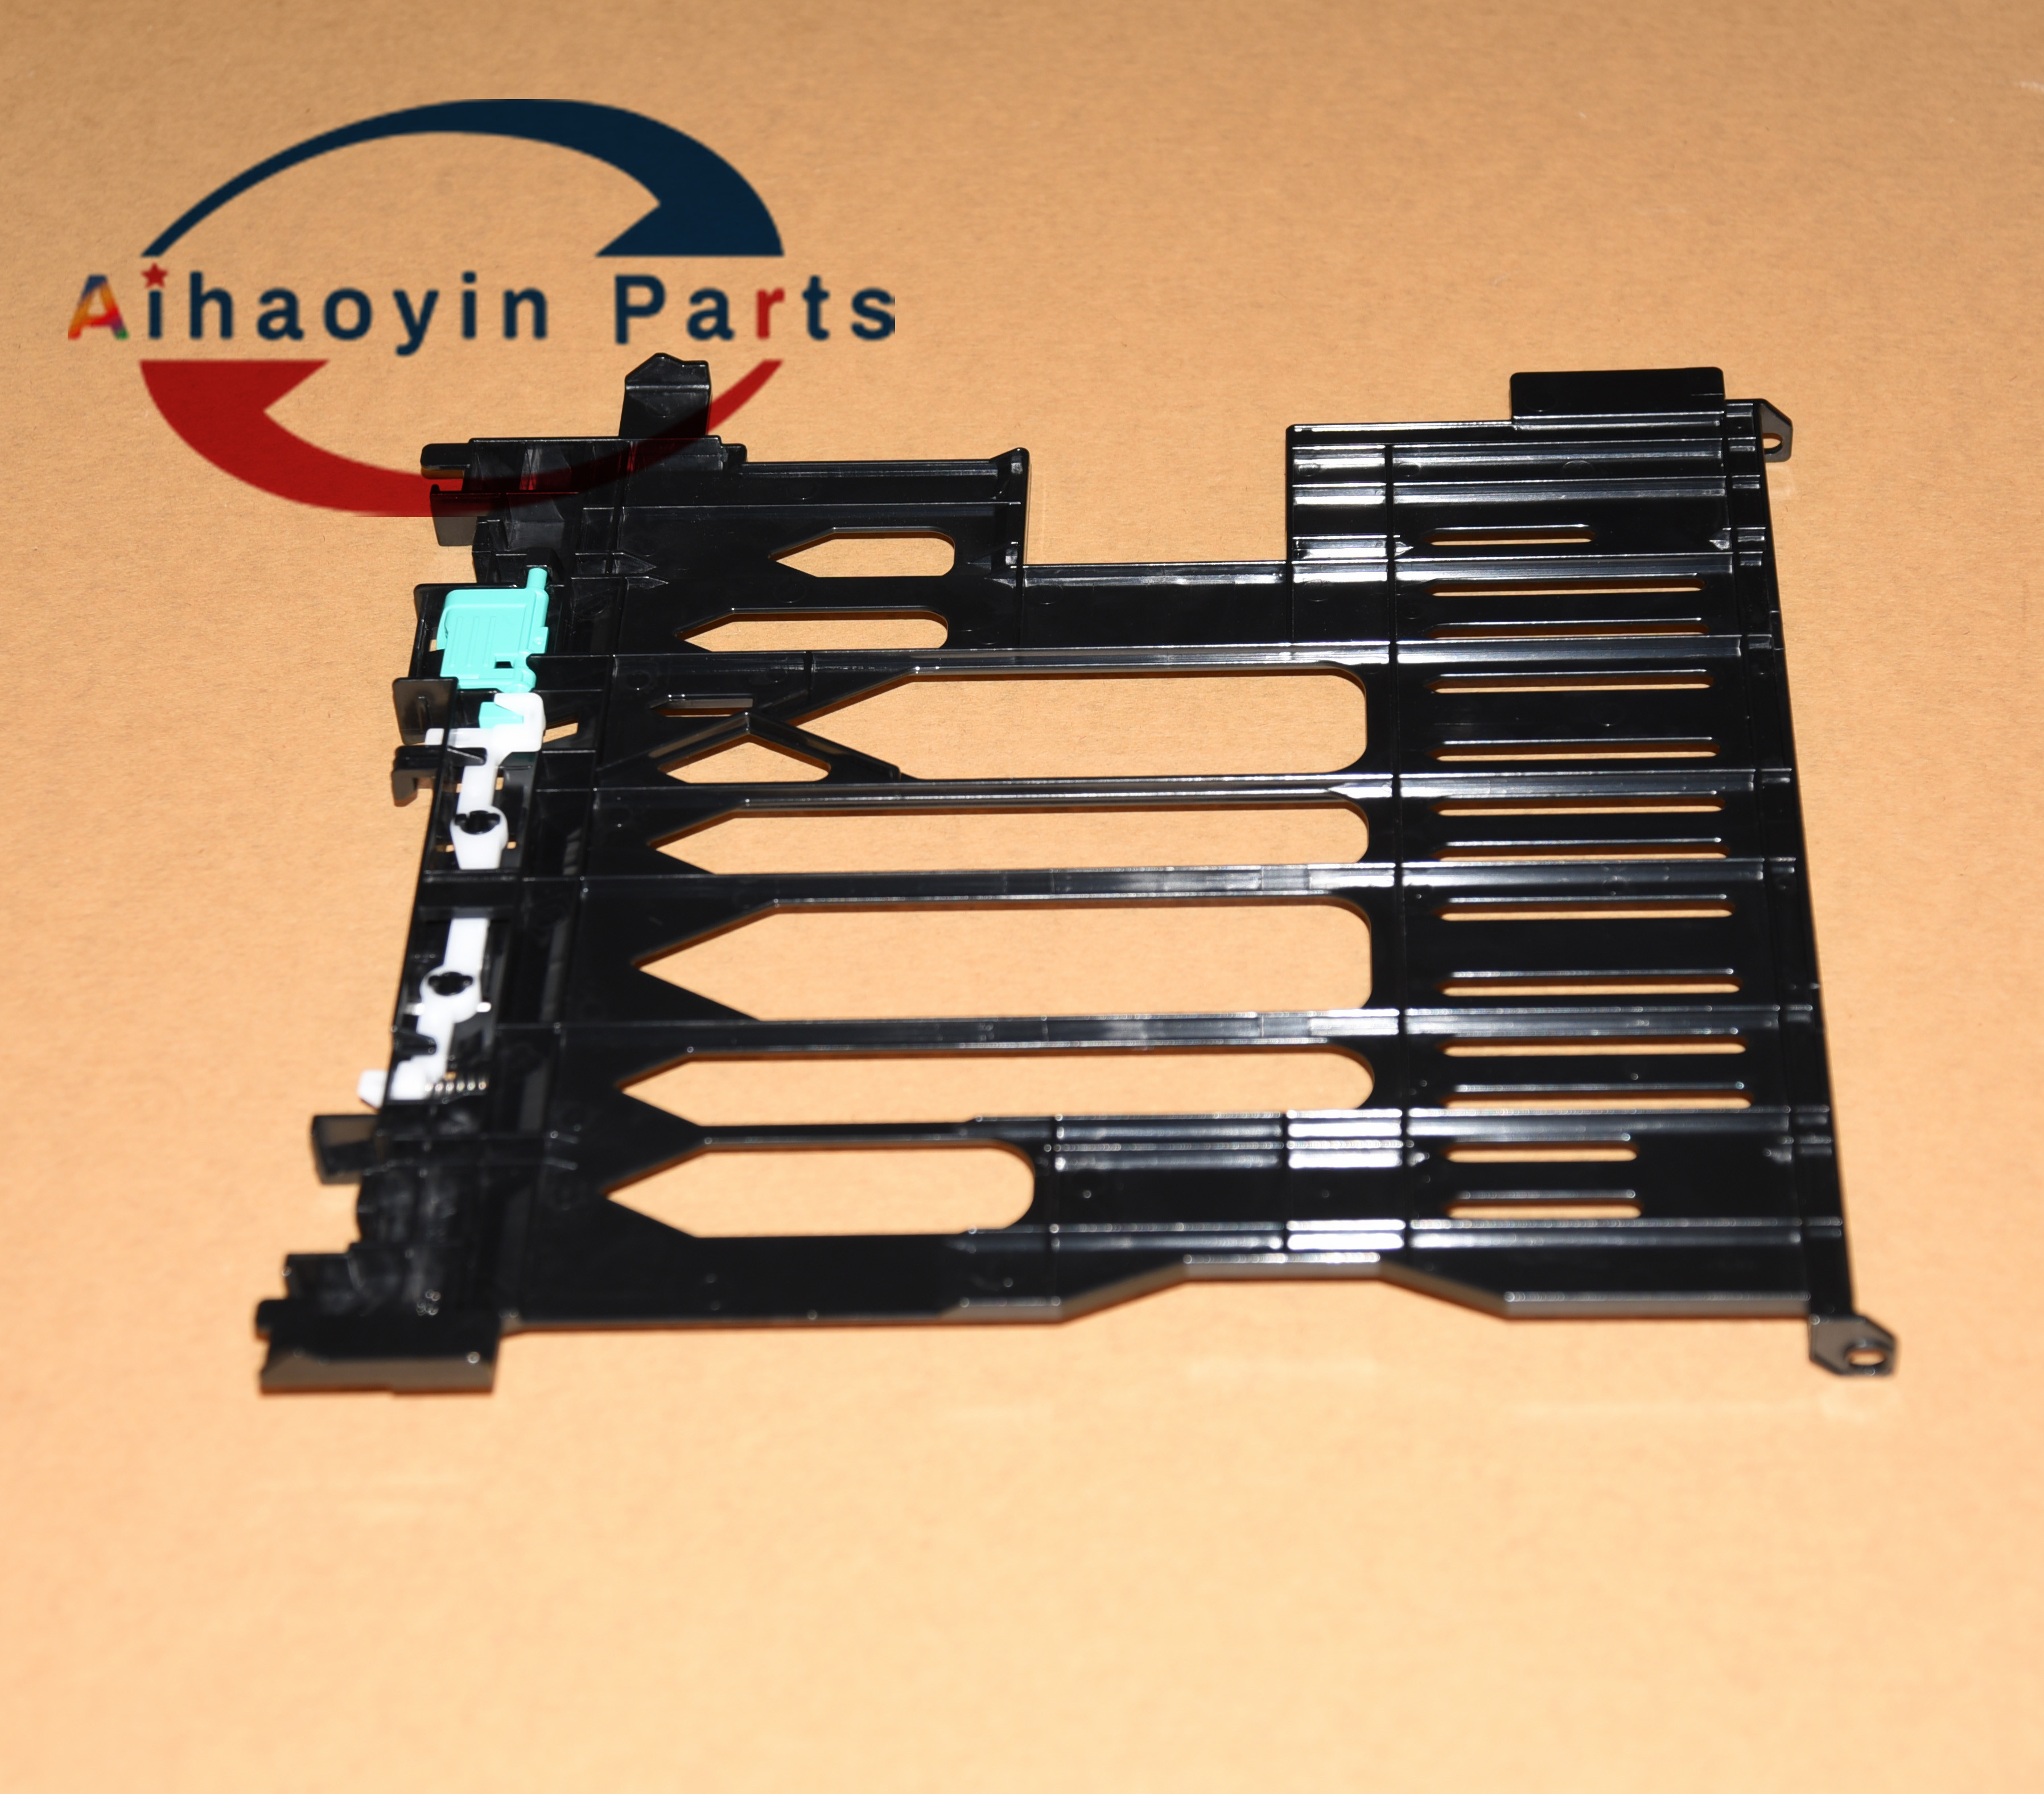 1pcs refubish for <font><b>HP</b></font> M402 <font><b>402</b></font> 403 426 427 501 506 527 Duplex Unit Printer Parts RC4-3245 image